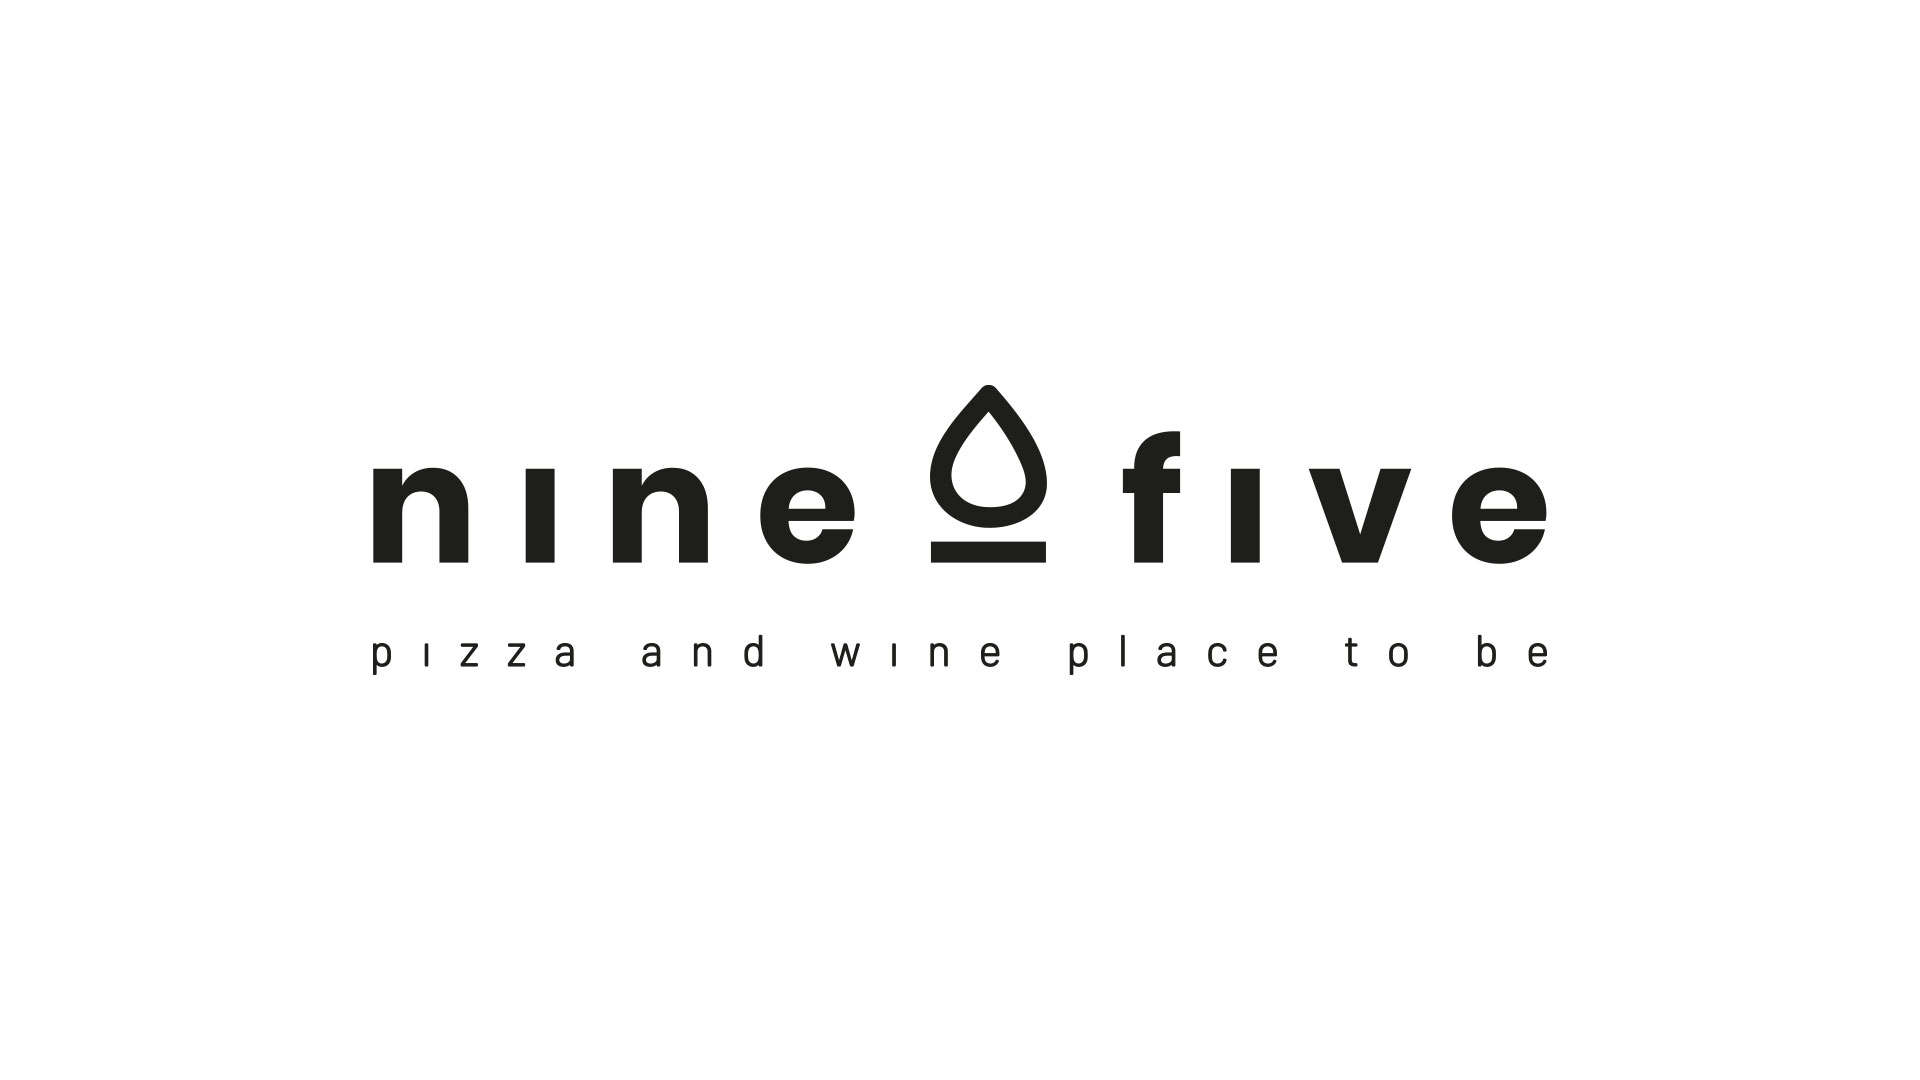 nineOfive Referenz Logo und Corporate Design